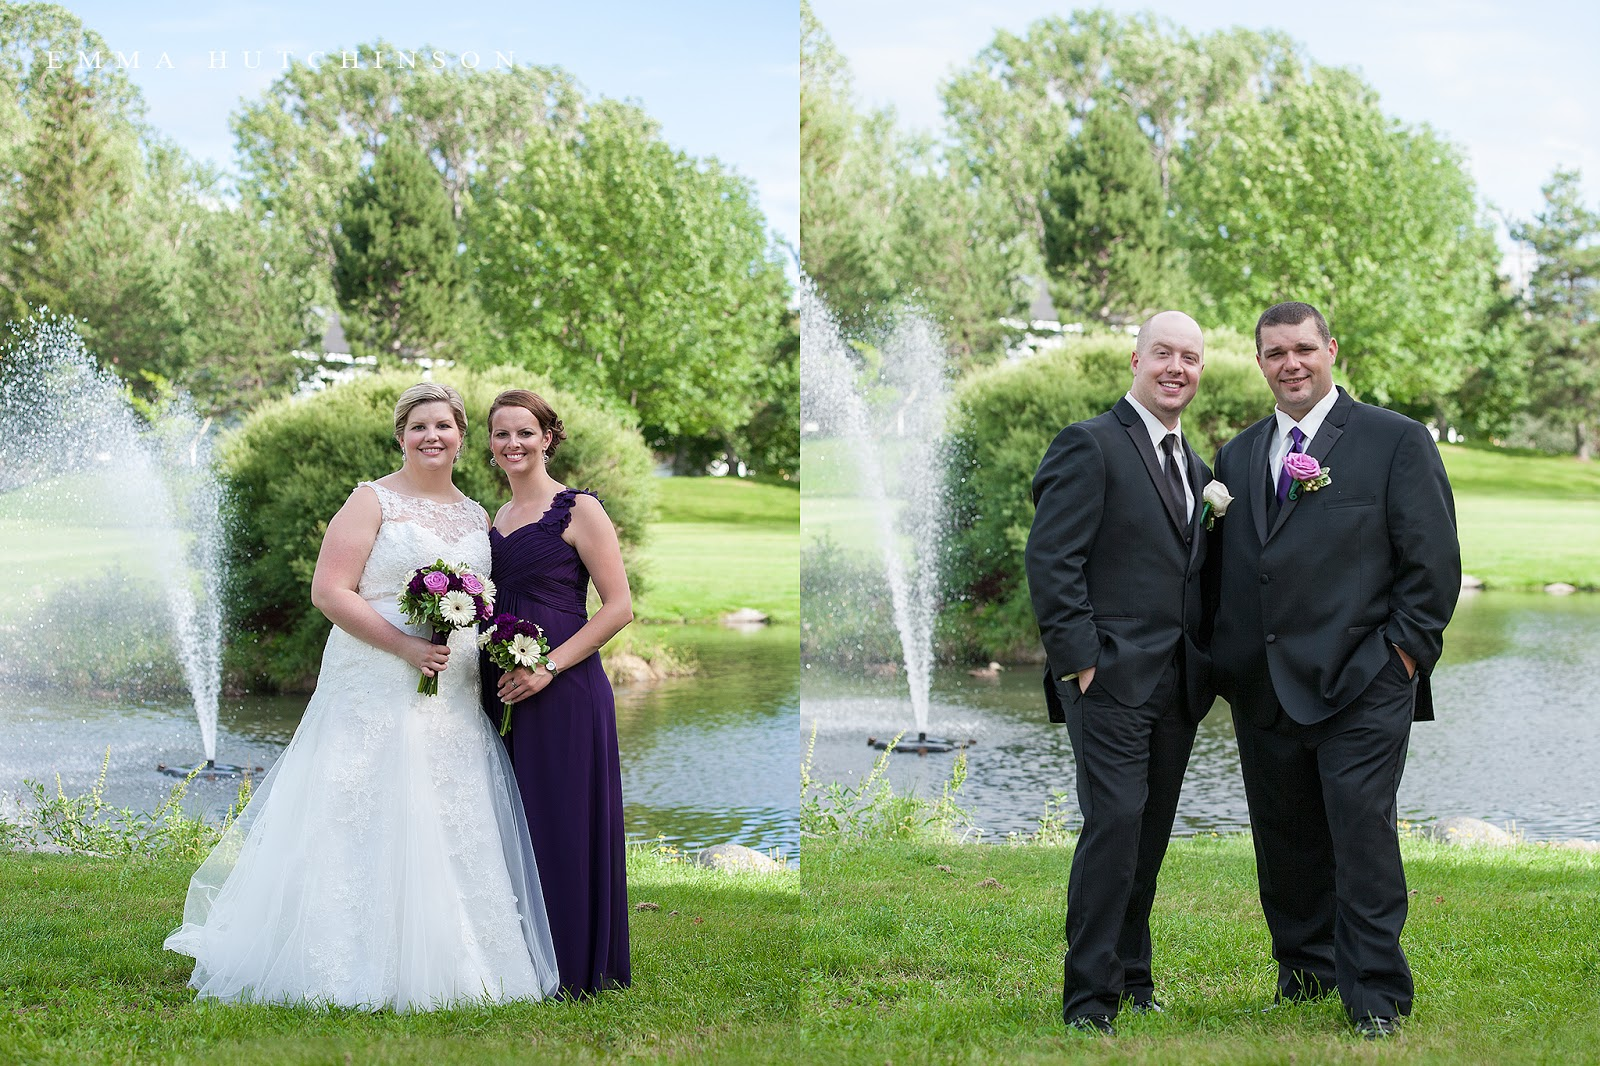 Weddings at Church Road Park in Grand Falls-Windsor - photography by Emma Hutchinson